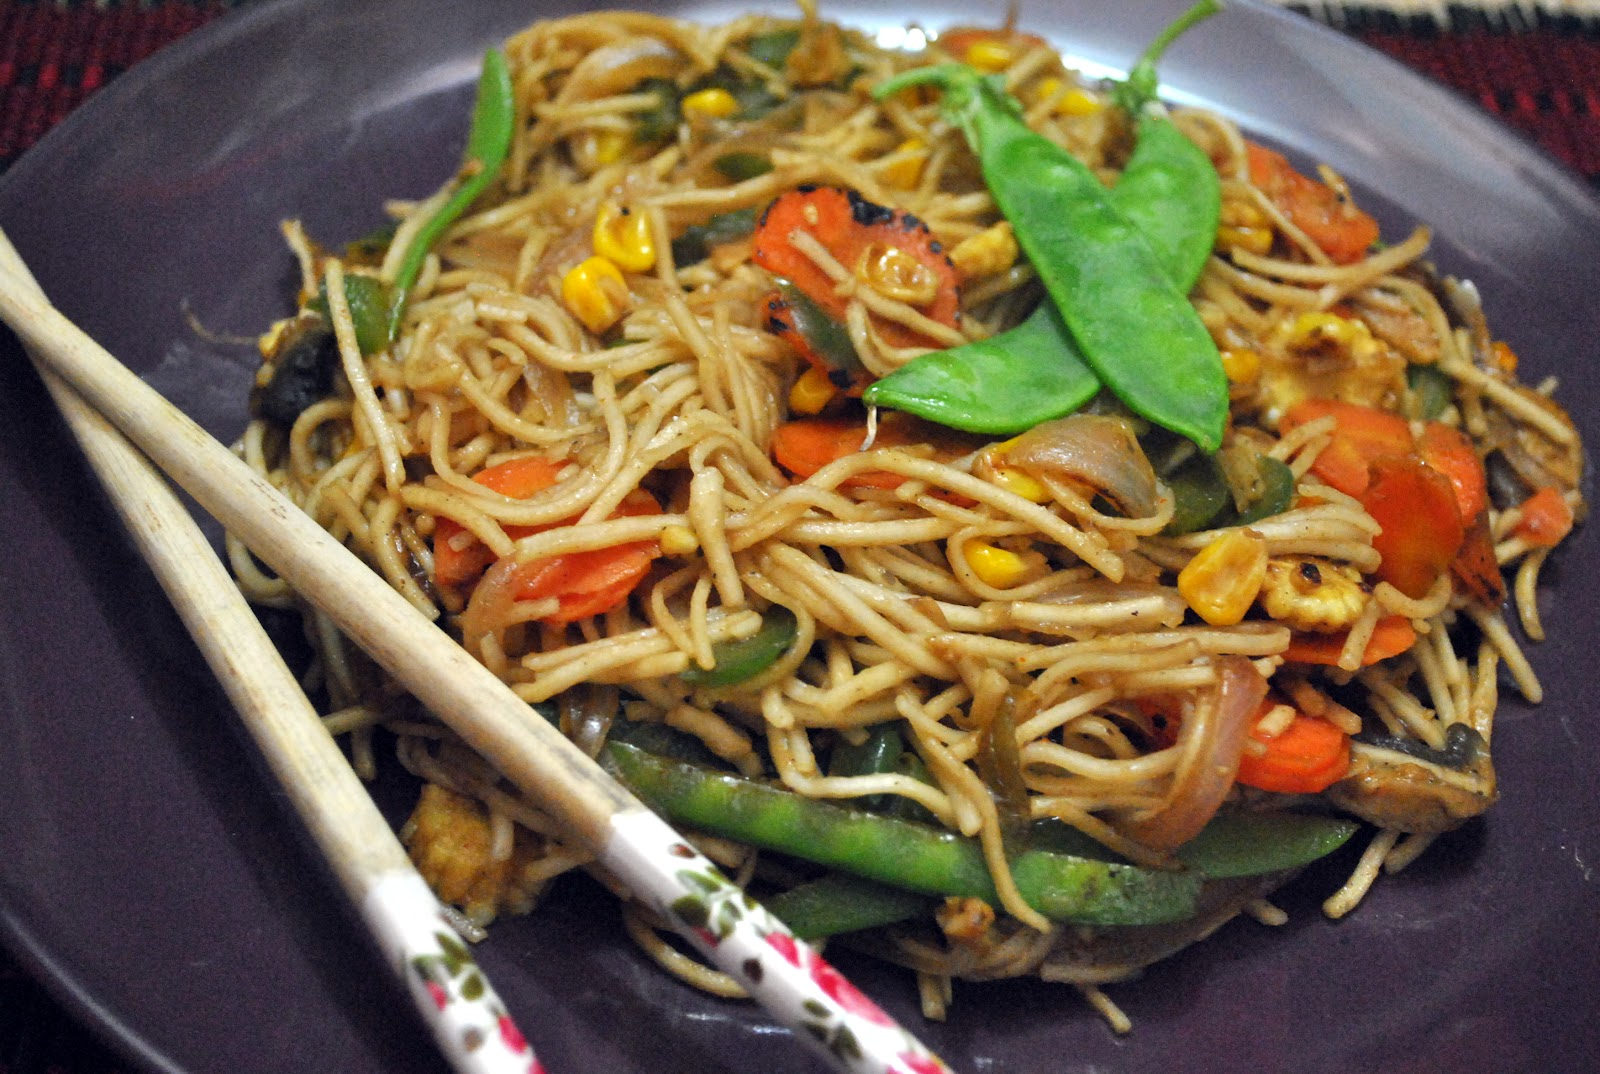 Cooking with my baby: Vegetable Chow Mein (Noodles)